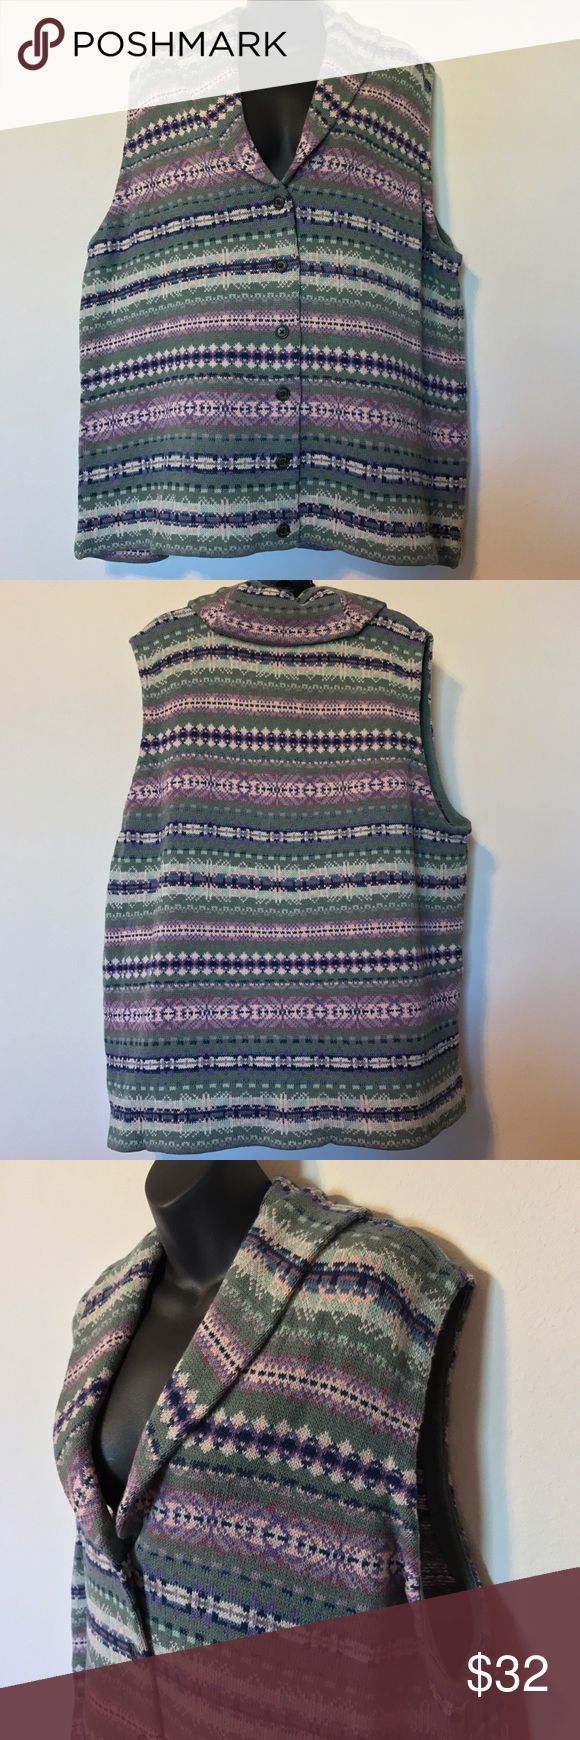 "CHAPS SWEATER VEST WOMEN'S GREEN BLUE FAIR ISLE NWT $75 CHAPS SWEATER VEST WOMEN'S TOP PLUS SIZE 3X GREEN BLUE FAIR ISLE BUTTON DOWN MEASUREMENTS LYING FLAT ARMPIT TO ARMPIT 27"" LENGTH 32"" Chaps Jackets & Coats Vests"